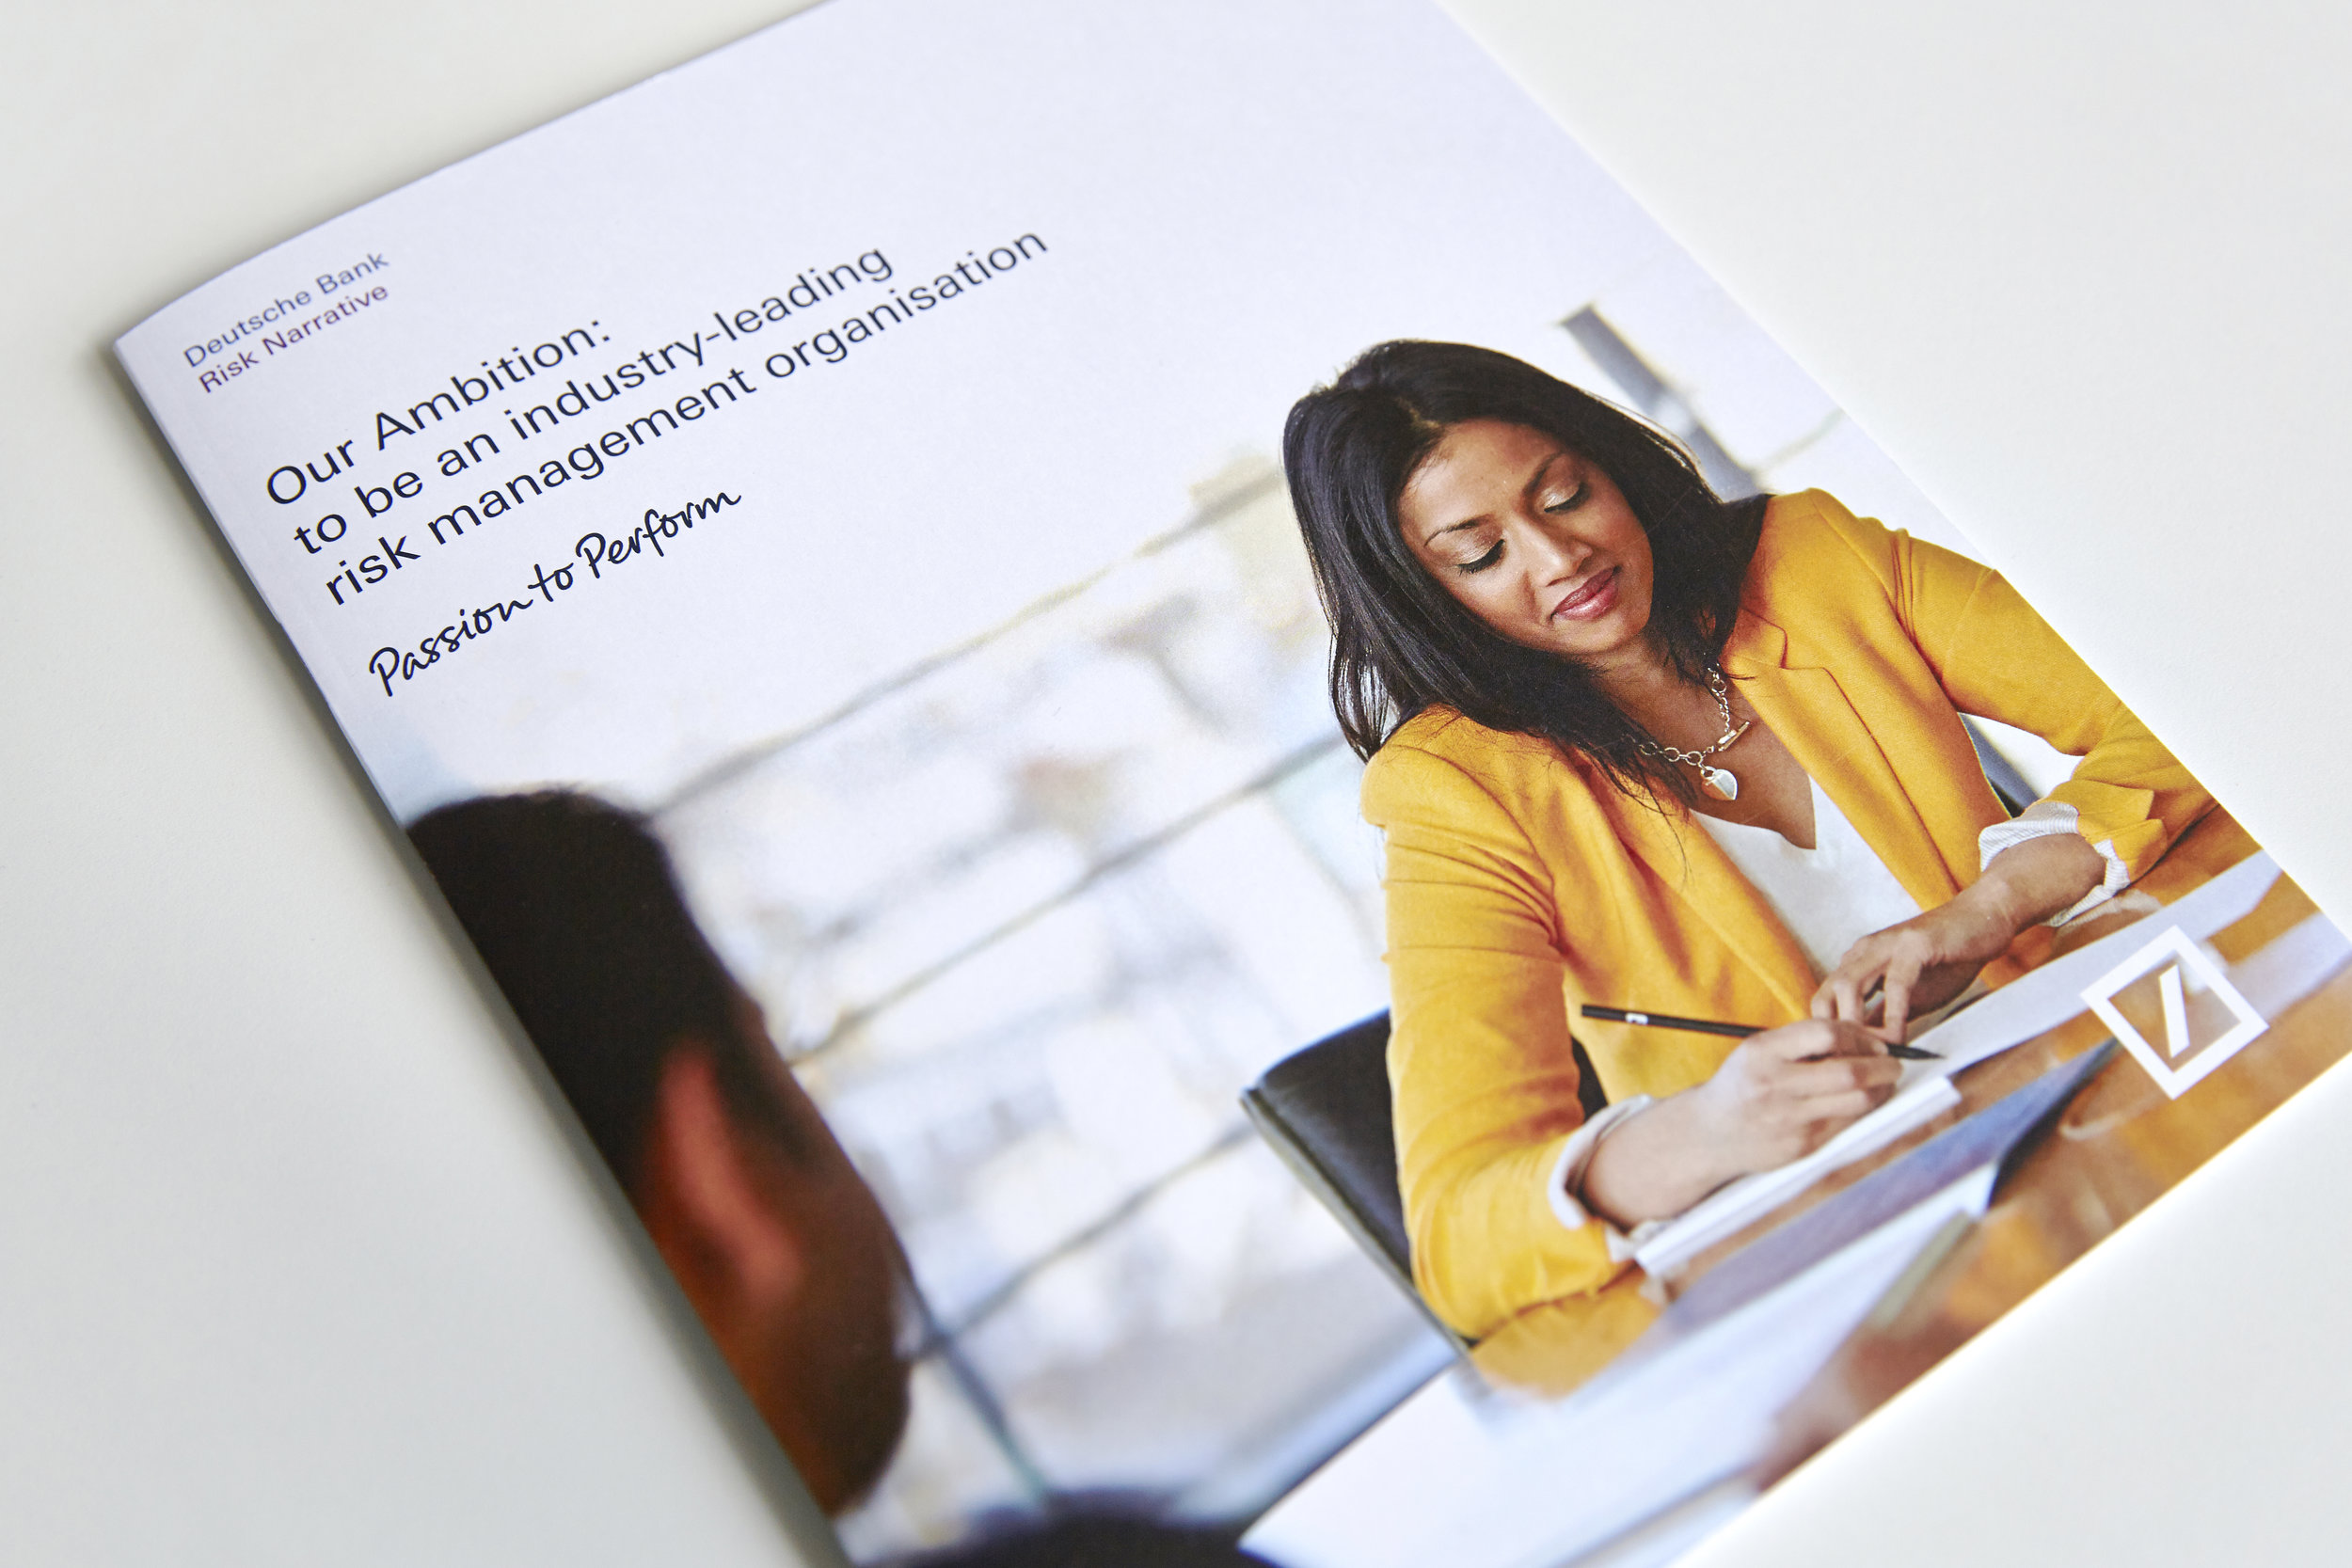 Internal communications - Knowing how best to communicate with colleagues and employees, helps foster trust, build knowledge, and inspire productivity. Our expert approach to internal communications makes sure your messages reach the right people, in the right way, at the right time.Find out more